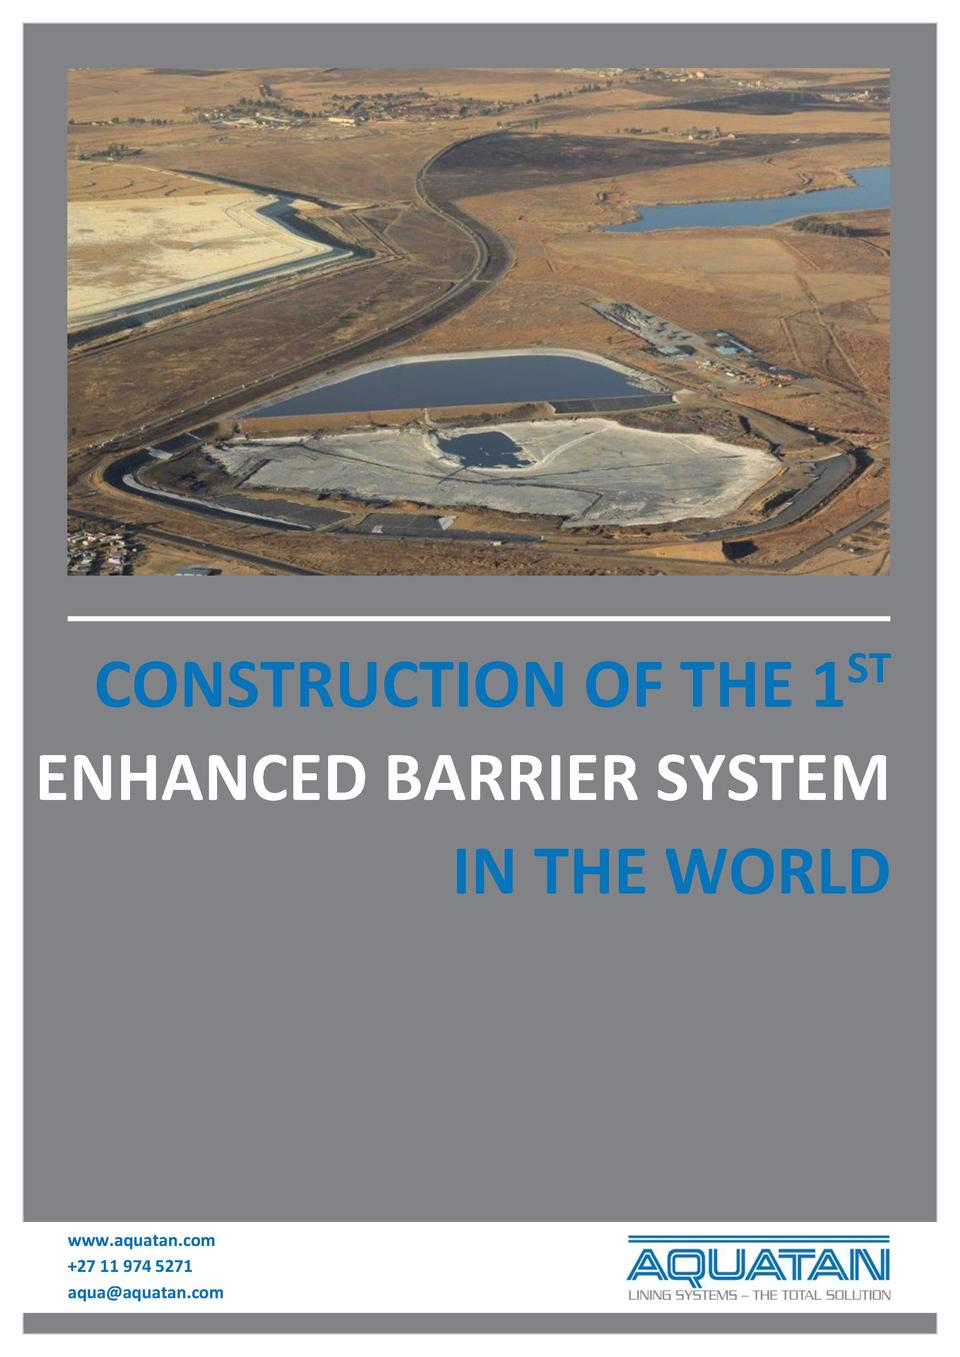 ST  CONSTRUCTION OF THE 1 ENHANCED BARRIER SYSTEM IN THE WORLD  www.aquatan.com  27 11 974 5271 aqua aquatan.com